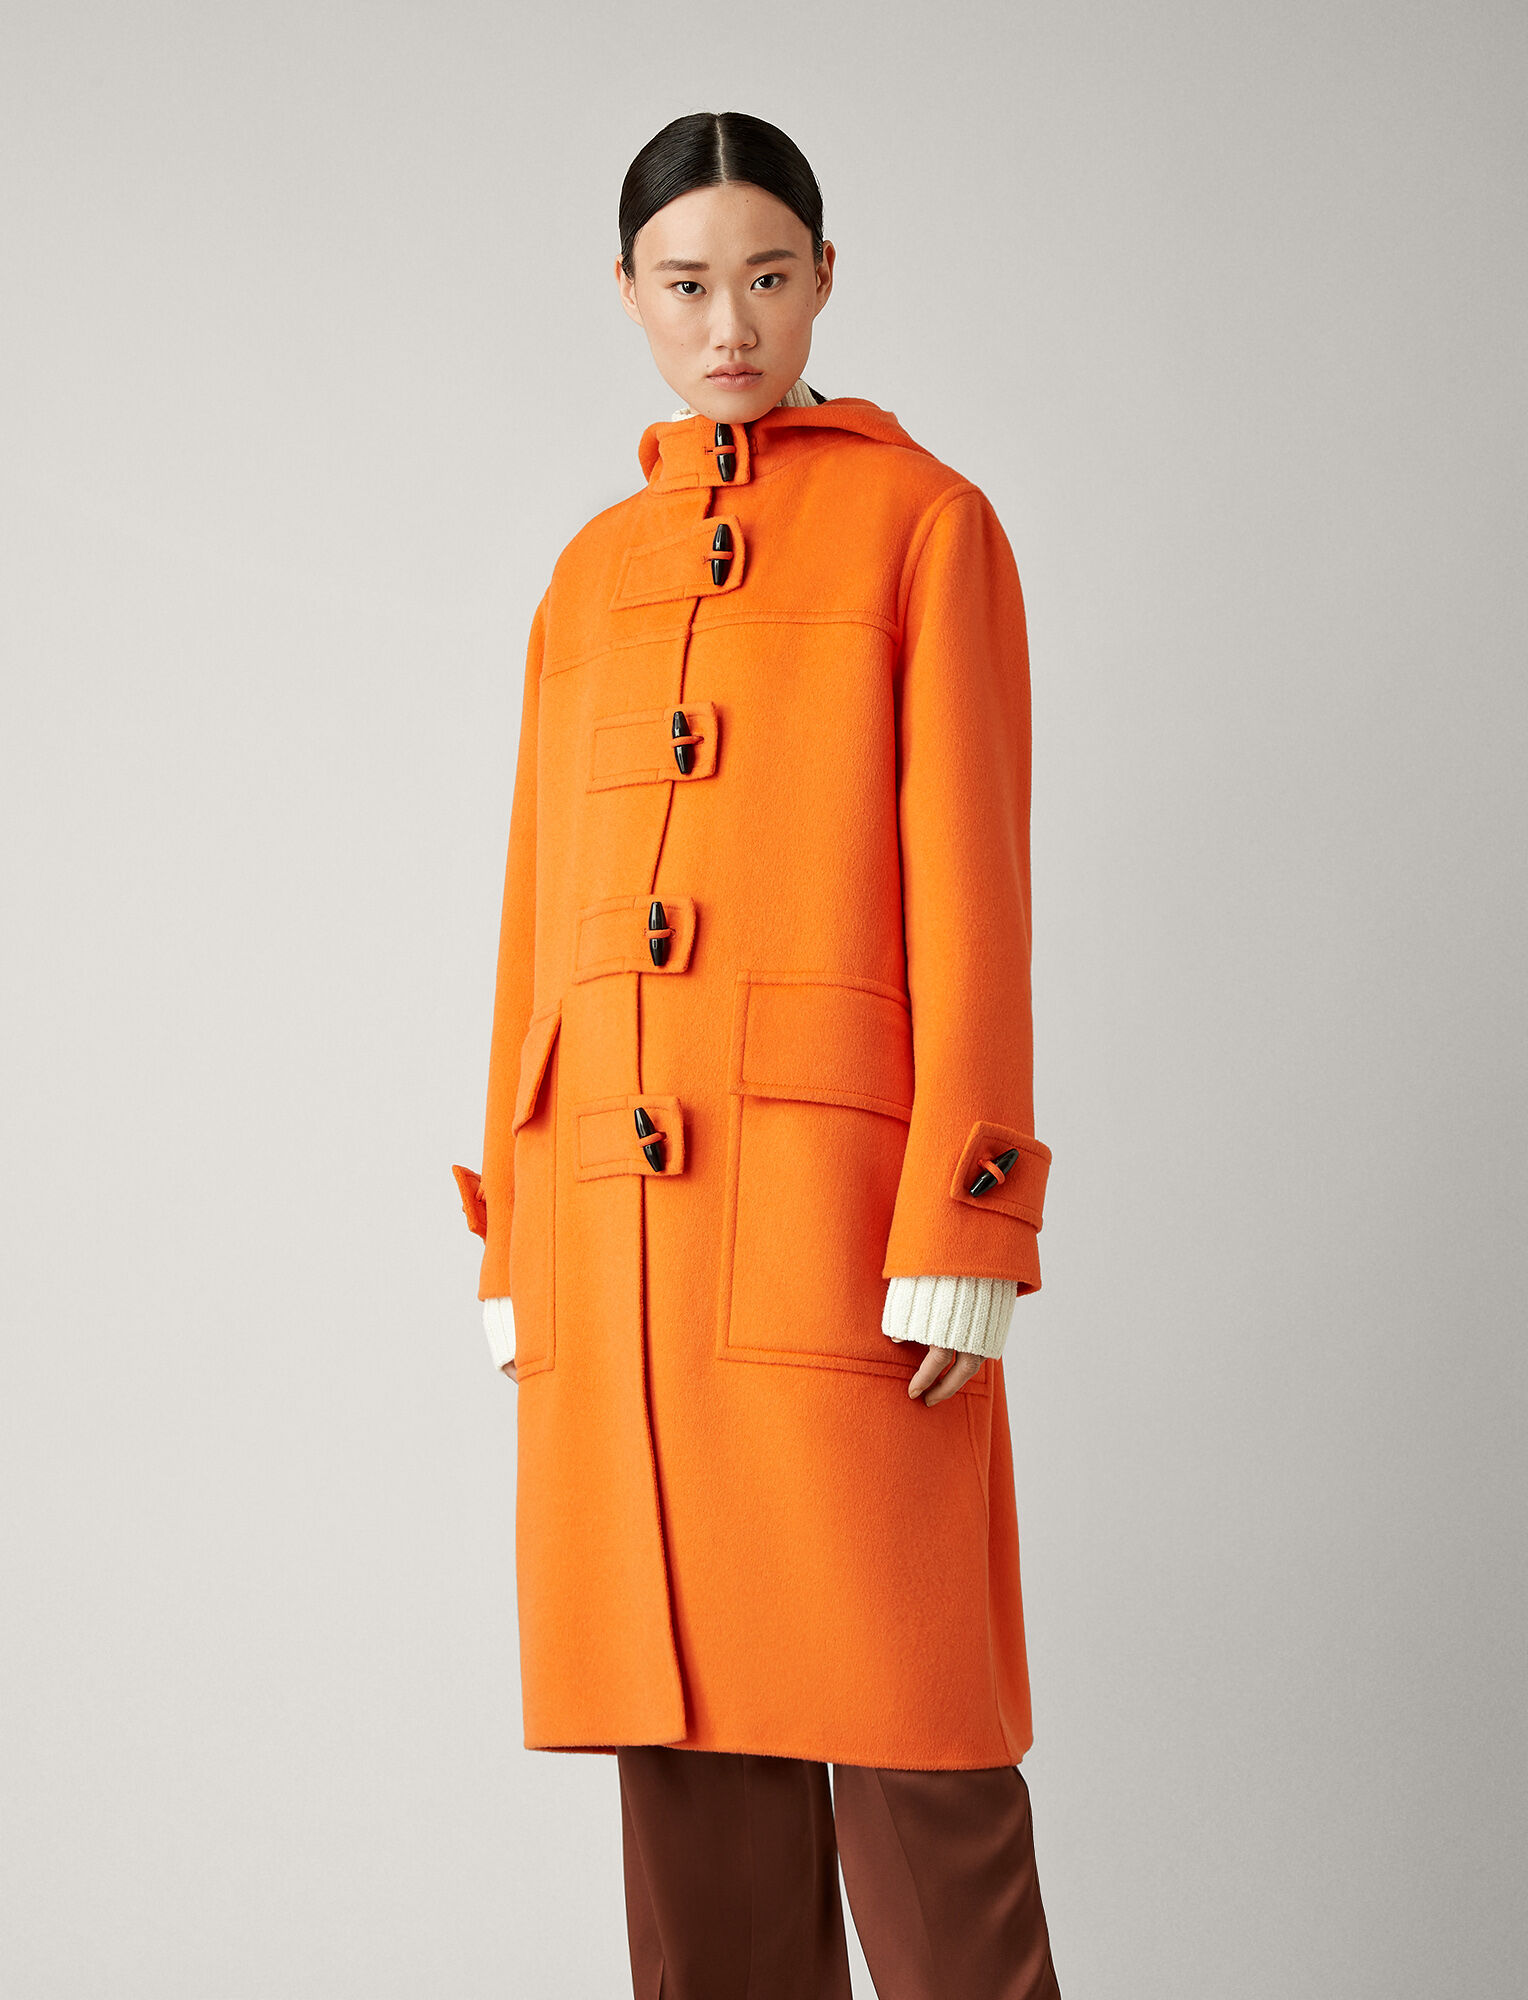 Joseph, Maken Teddy Double Coat, in CARROT